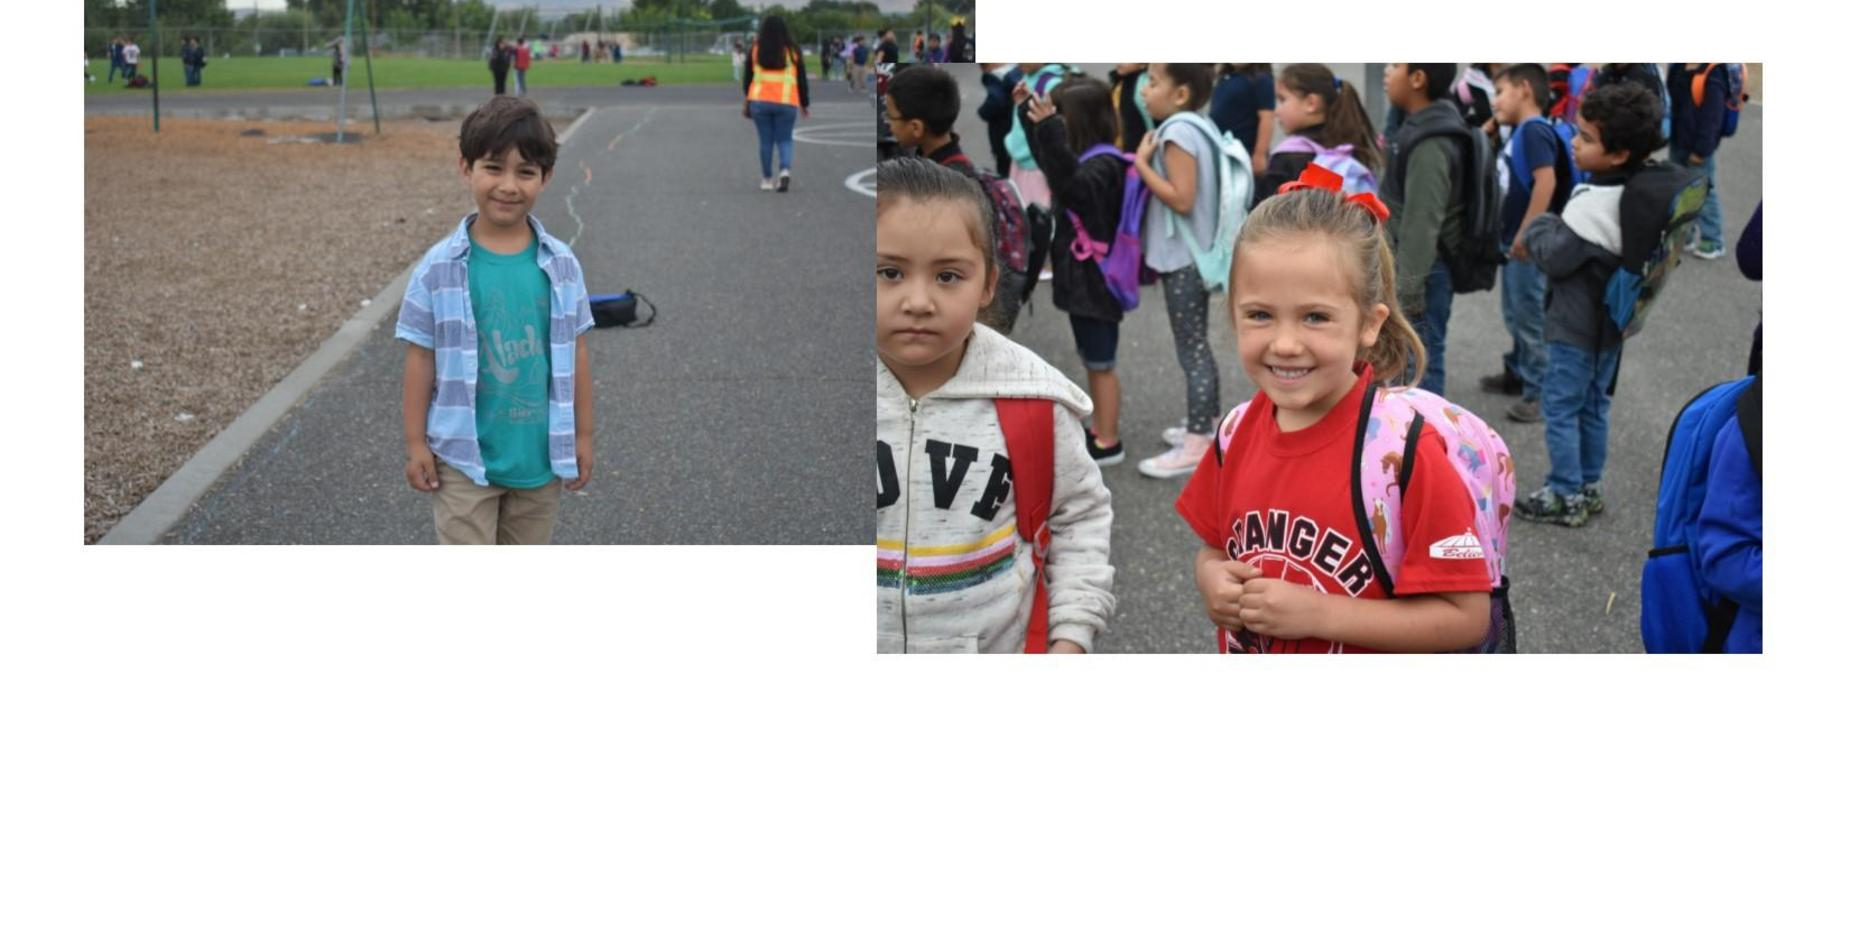 two pictures.  The first picture of a boy smiling on pay to dress day.  The second picture of a girl smiling wearing her Granger Spartans shirt.